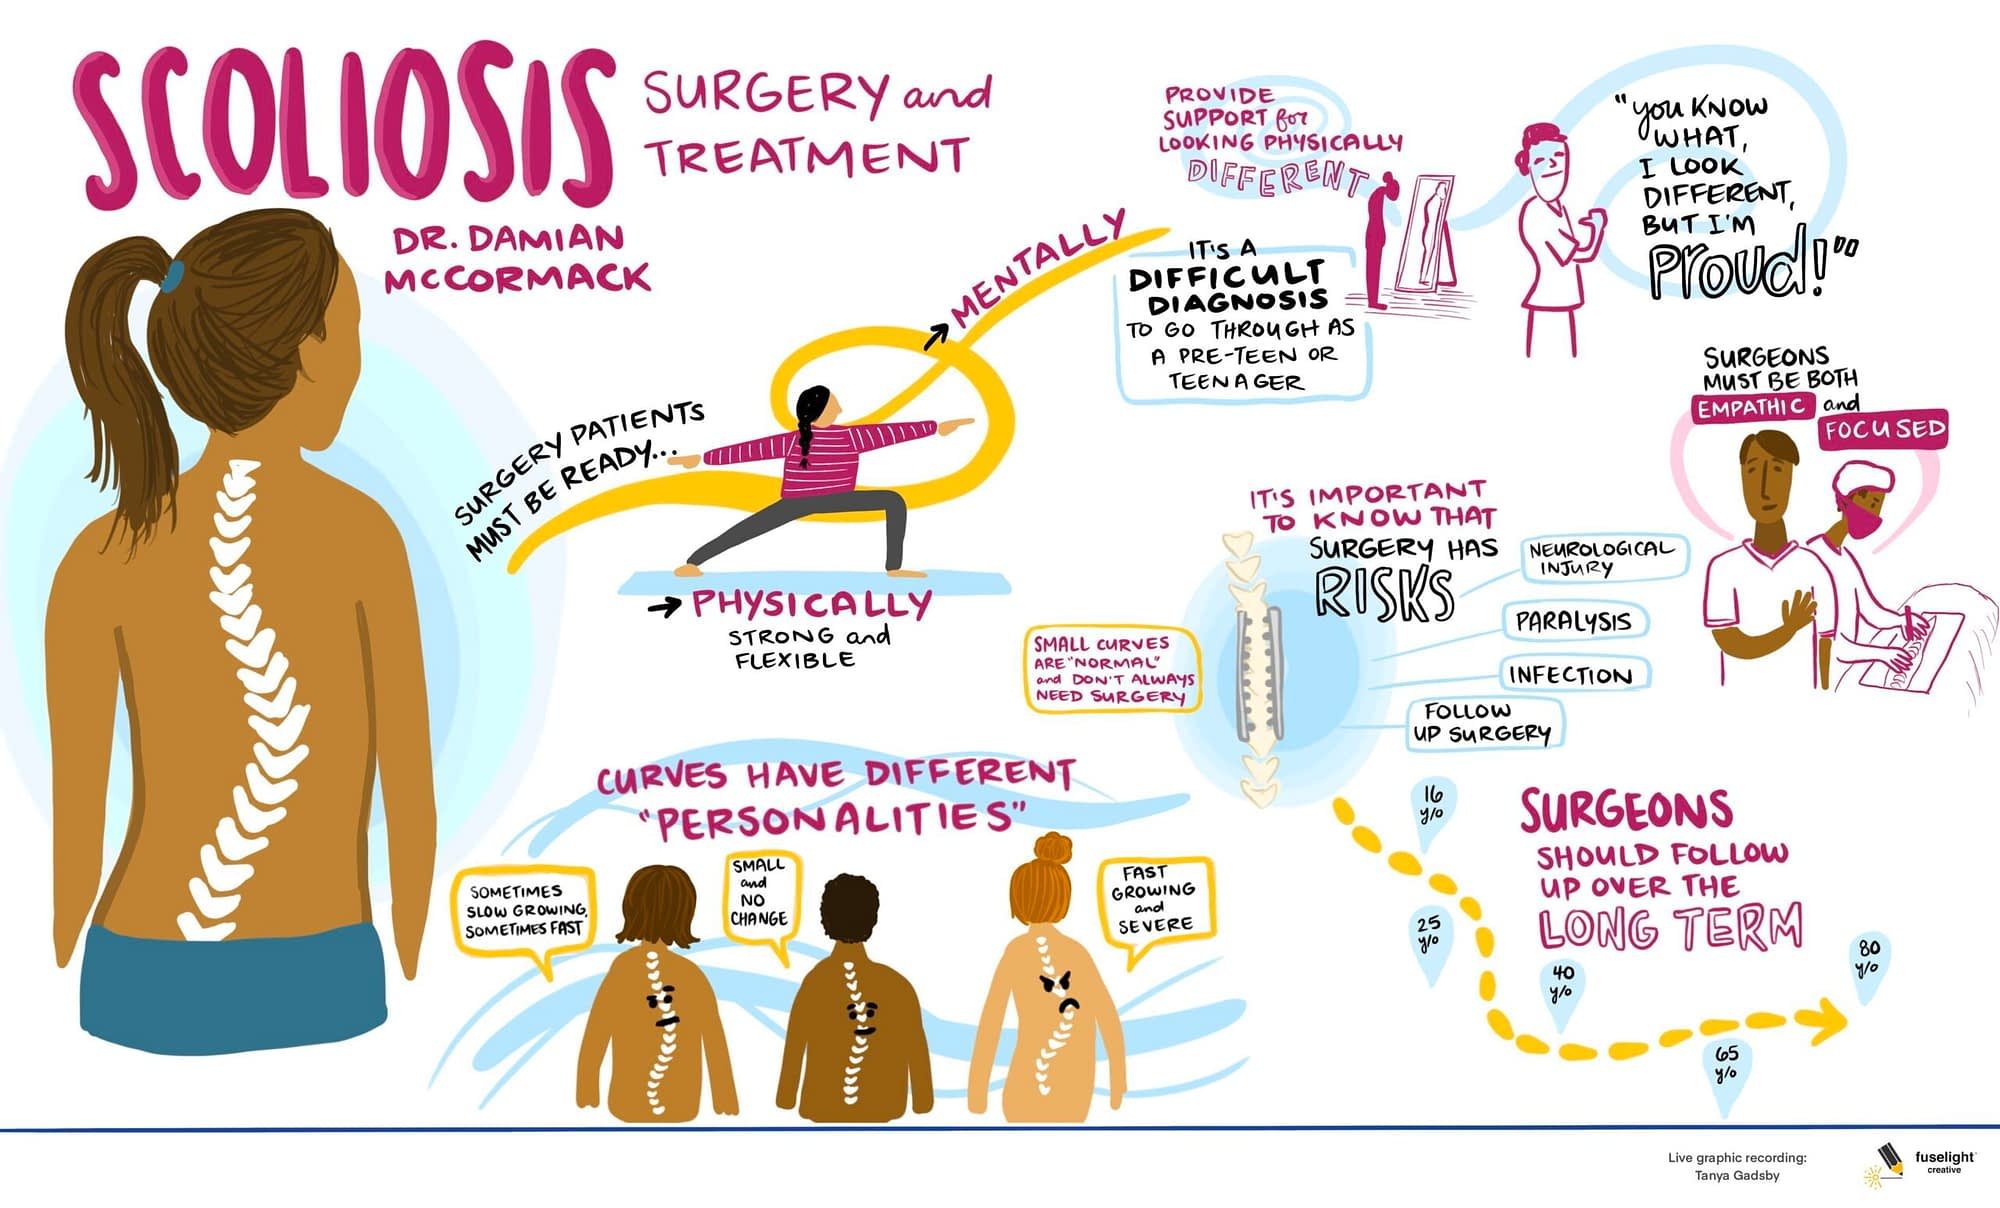 scoliosis graphic recording, scoliosis treatment and surgery, live drawing virtual meeting, virtual meeting graphic recording, visual scribe, graphic facilitation